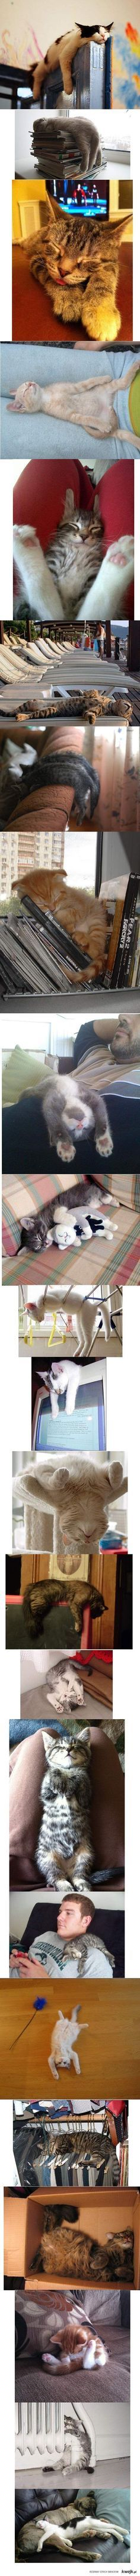 A cat can sleep anywhere. (scheduled via http://www.tailwindapp.com?utm_source=pinterest&utm_medium=twpin&utm_content=post16018292&utm_campaign=scheduler_attribution)